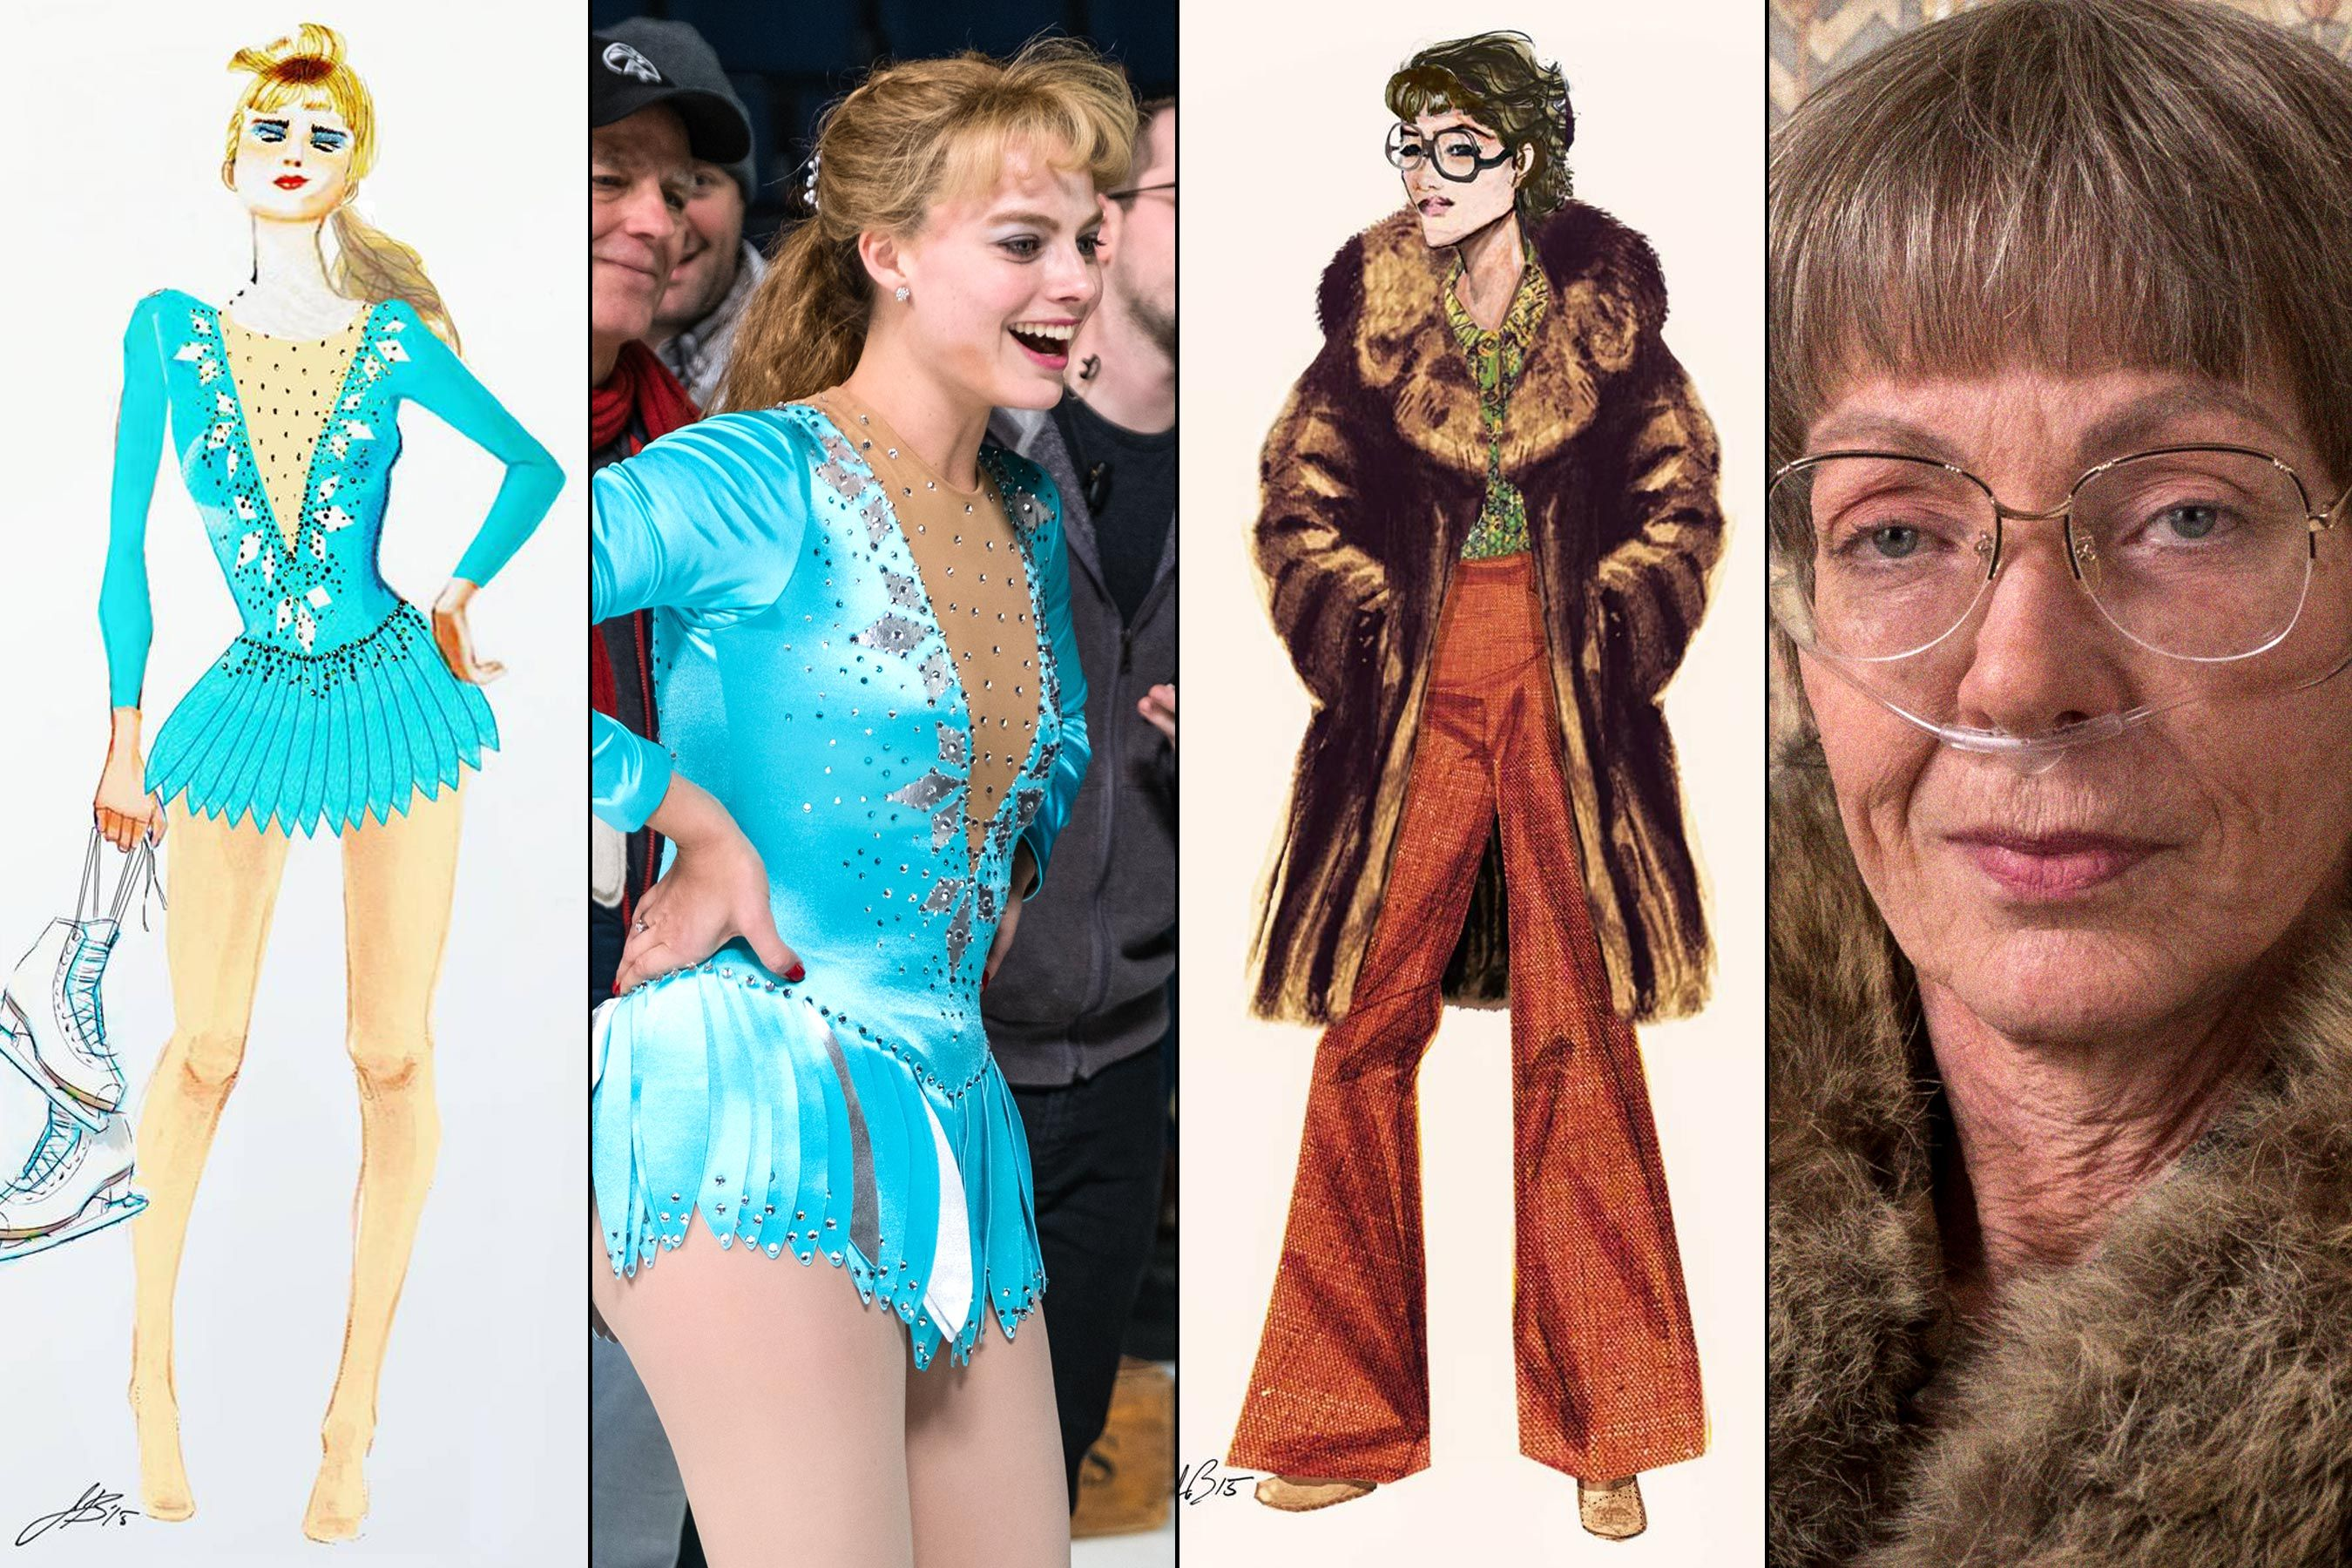 How I Tonya Costume Designer Stitched Sympathy For An Imperfect Outcast Costume Design Tonya Harding Fashion Design Sketch